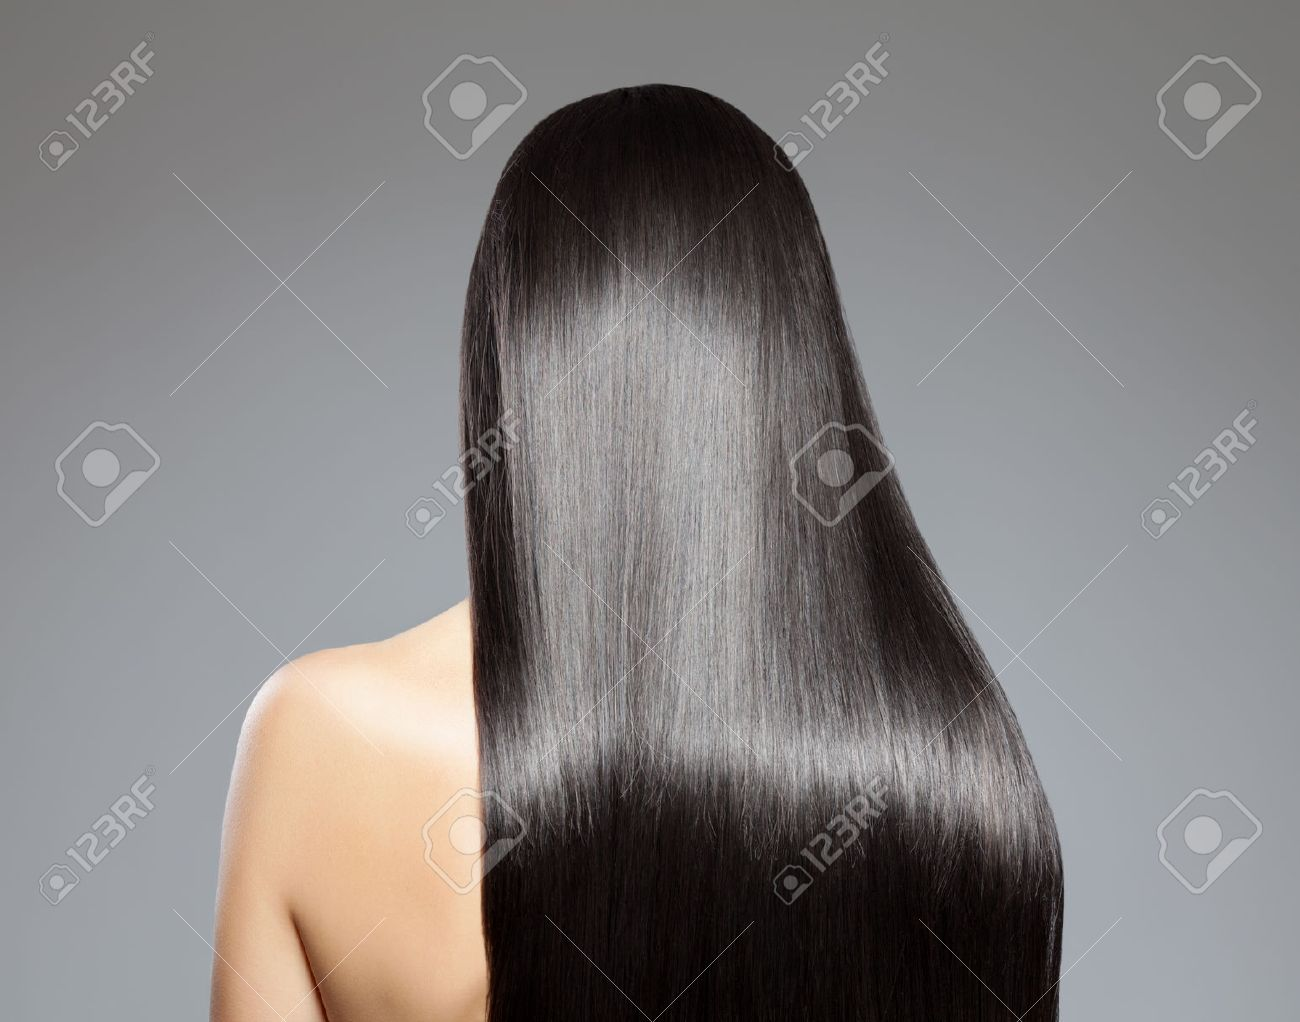 Back view of a woman with long straight hair - 36958680